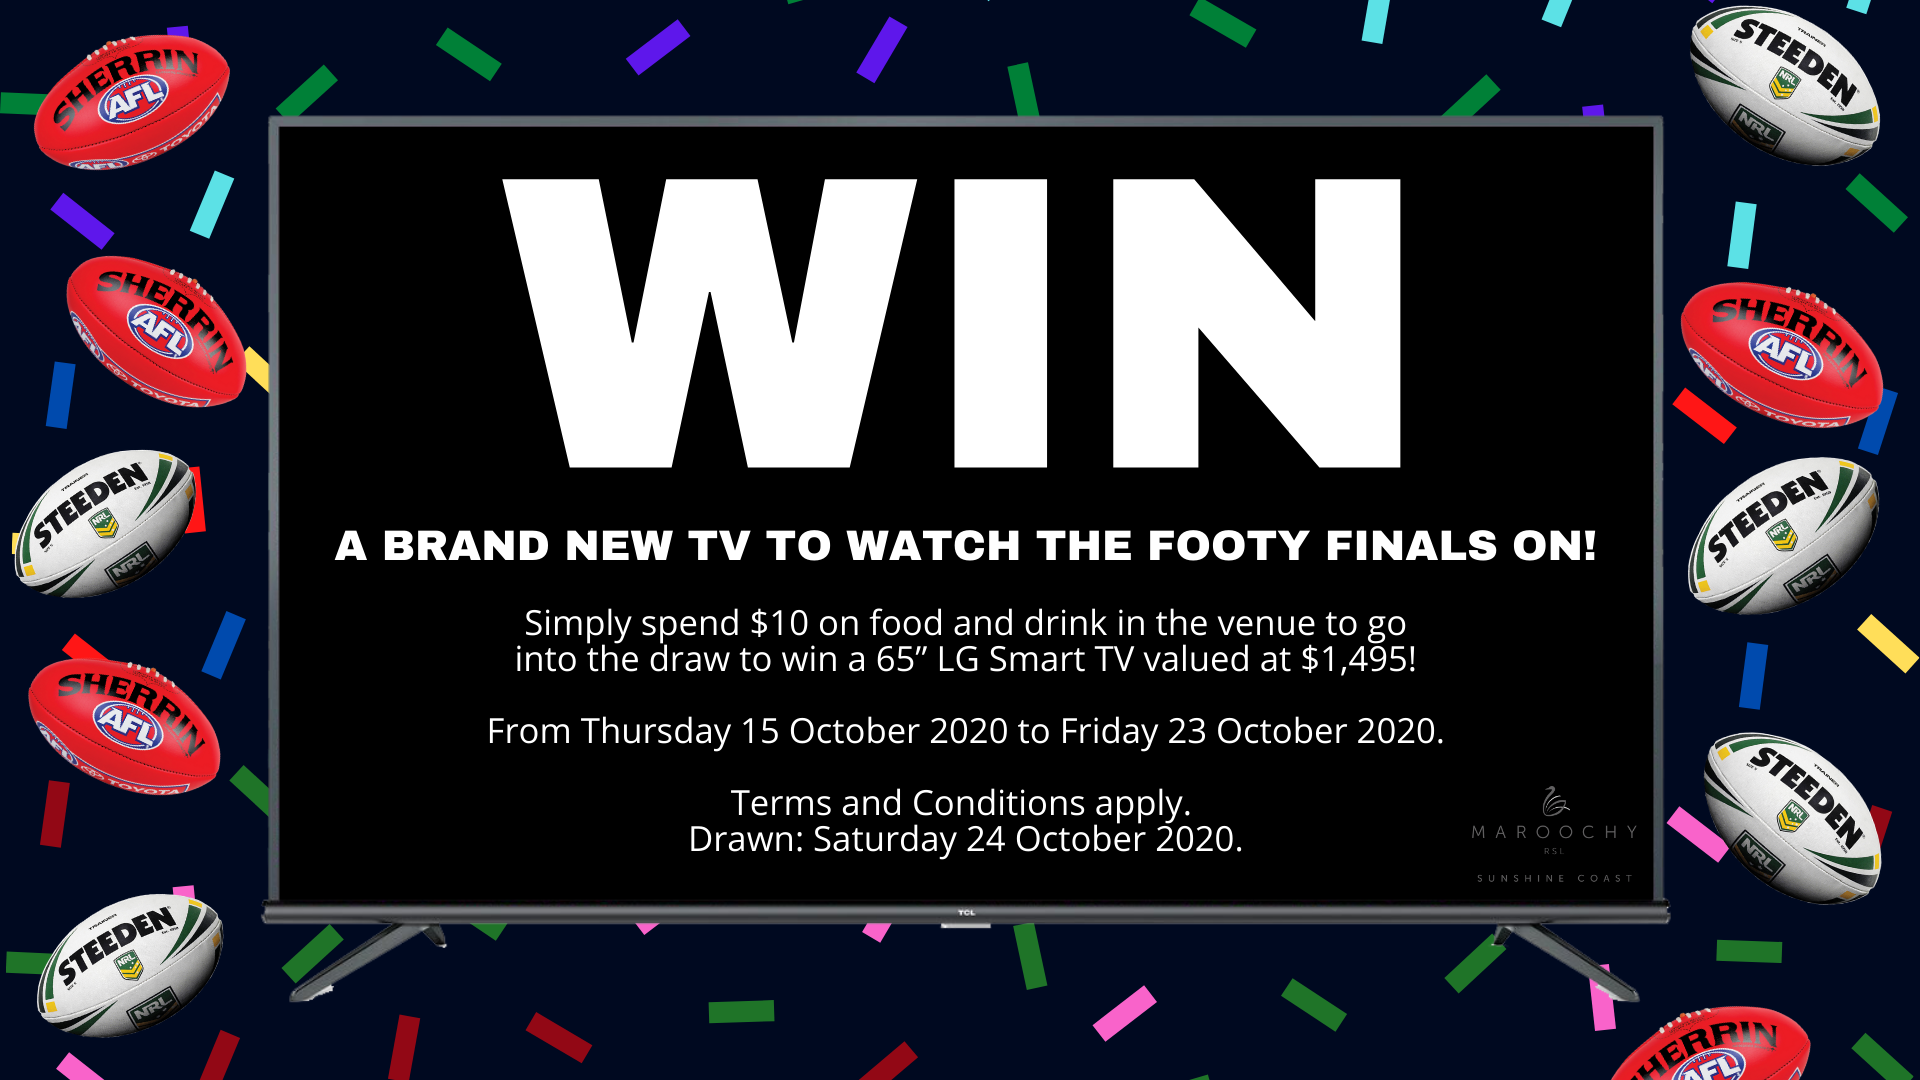 WIN a brand new TV to watch the footy finals on!